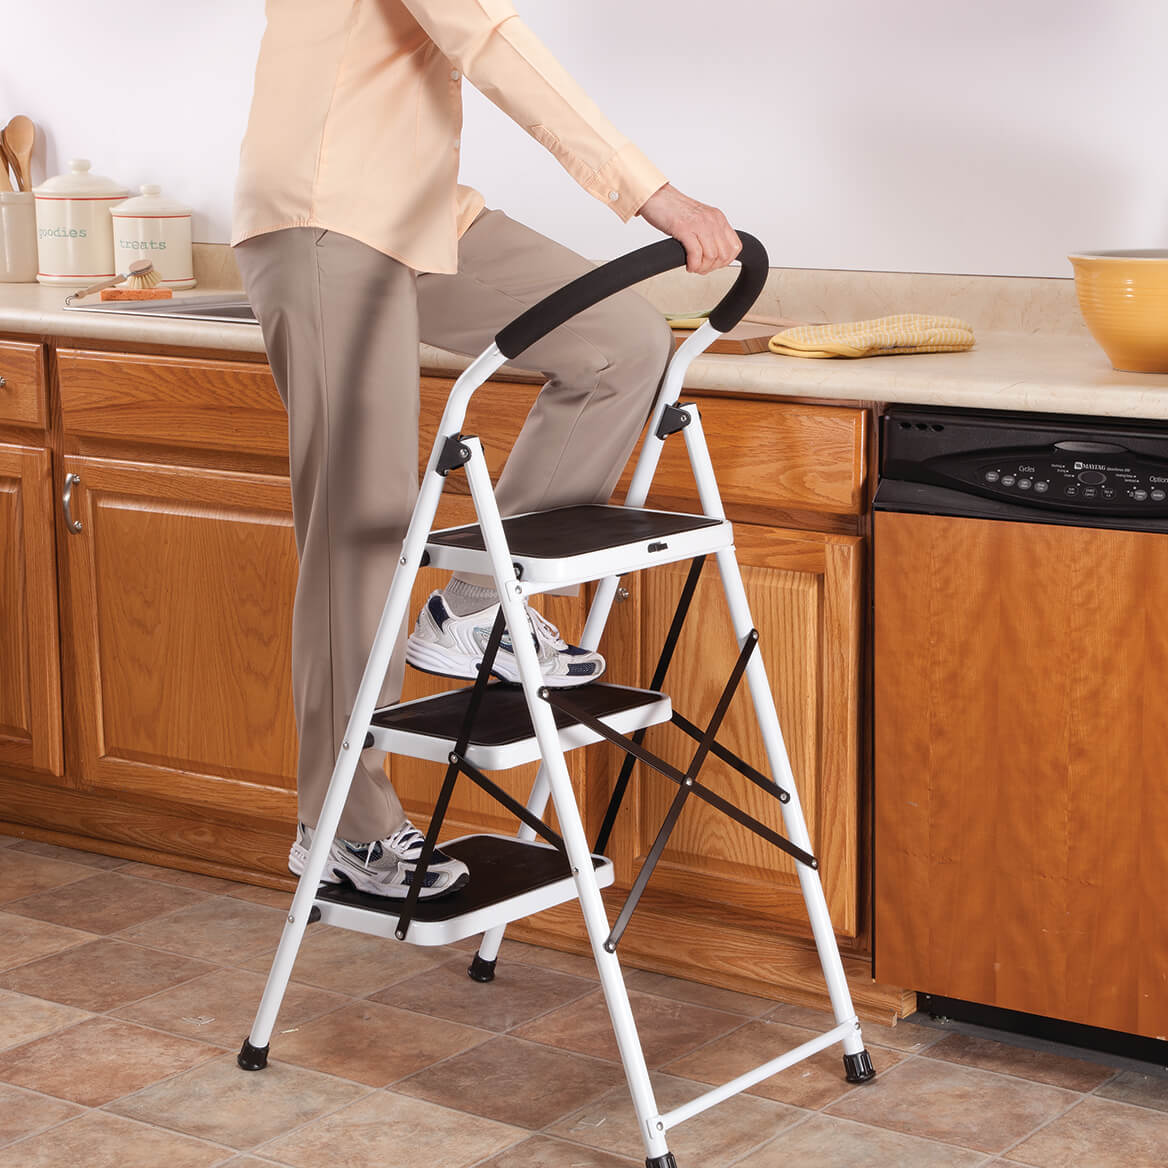 Select Quany Saved To Wishlist Save Add Cart Description Steel Step Ladder Stool Combo